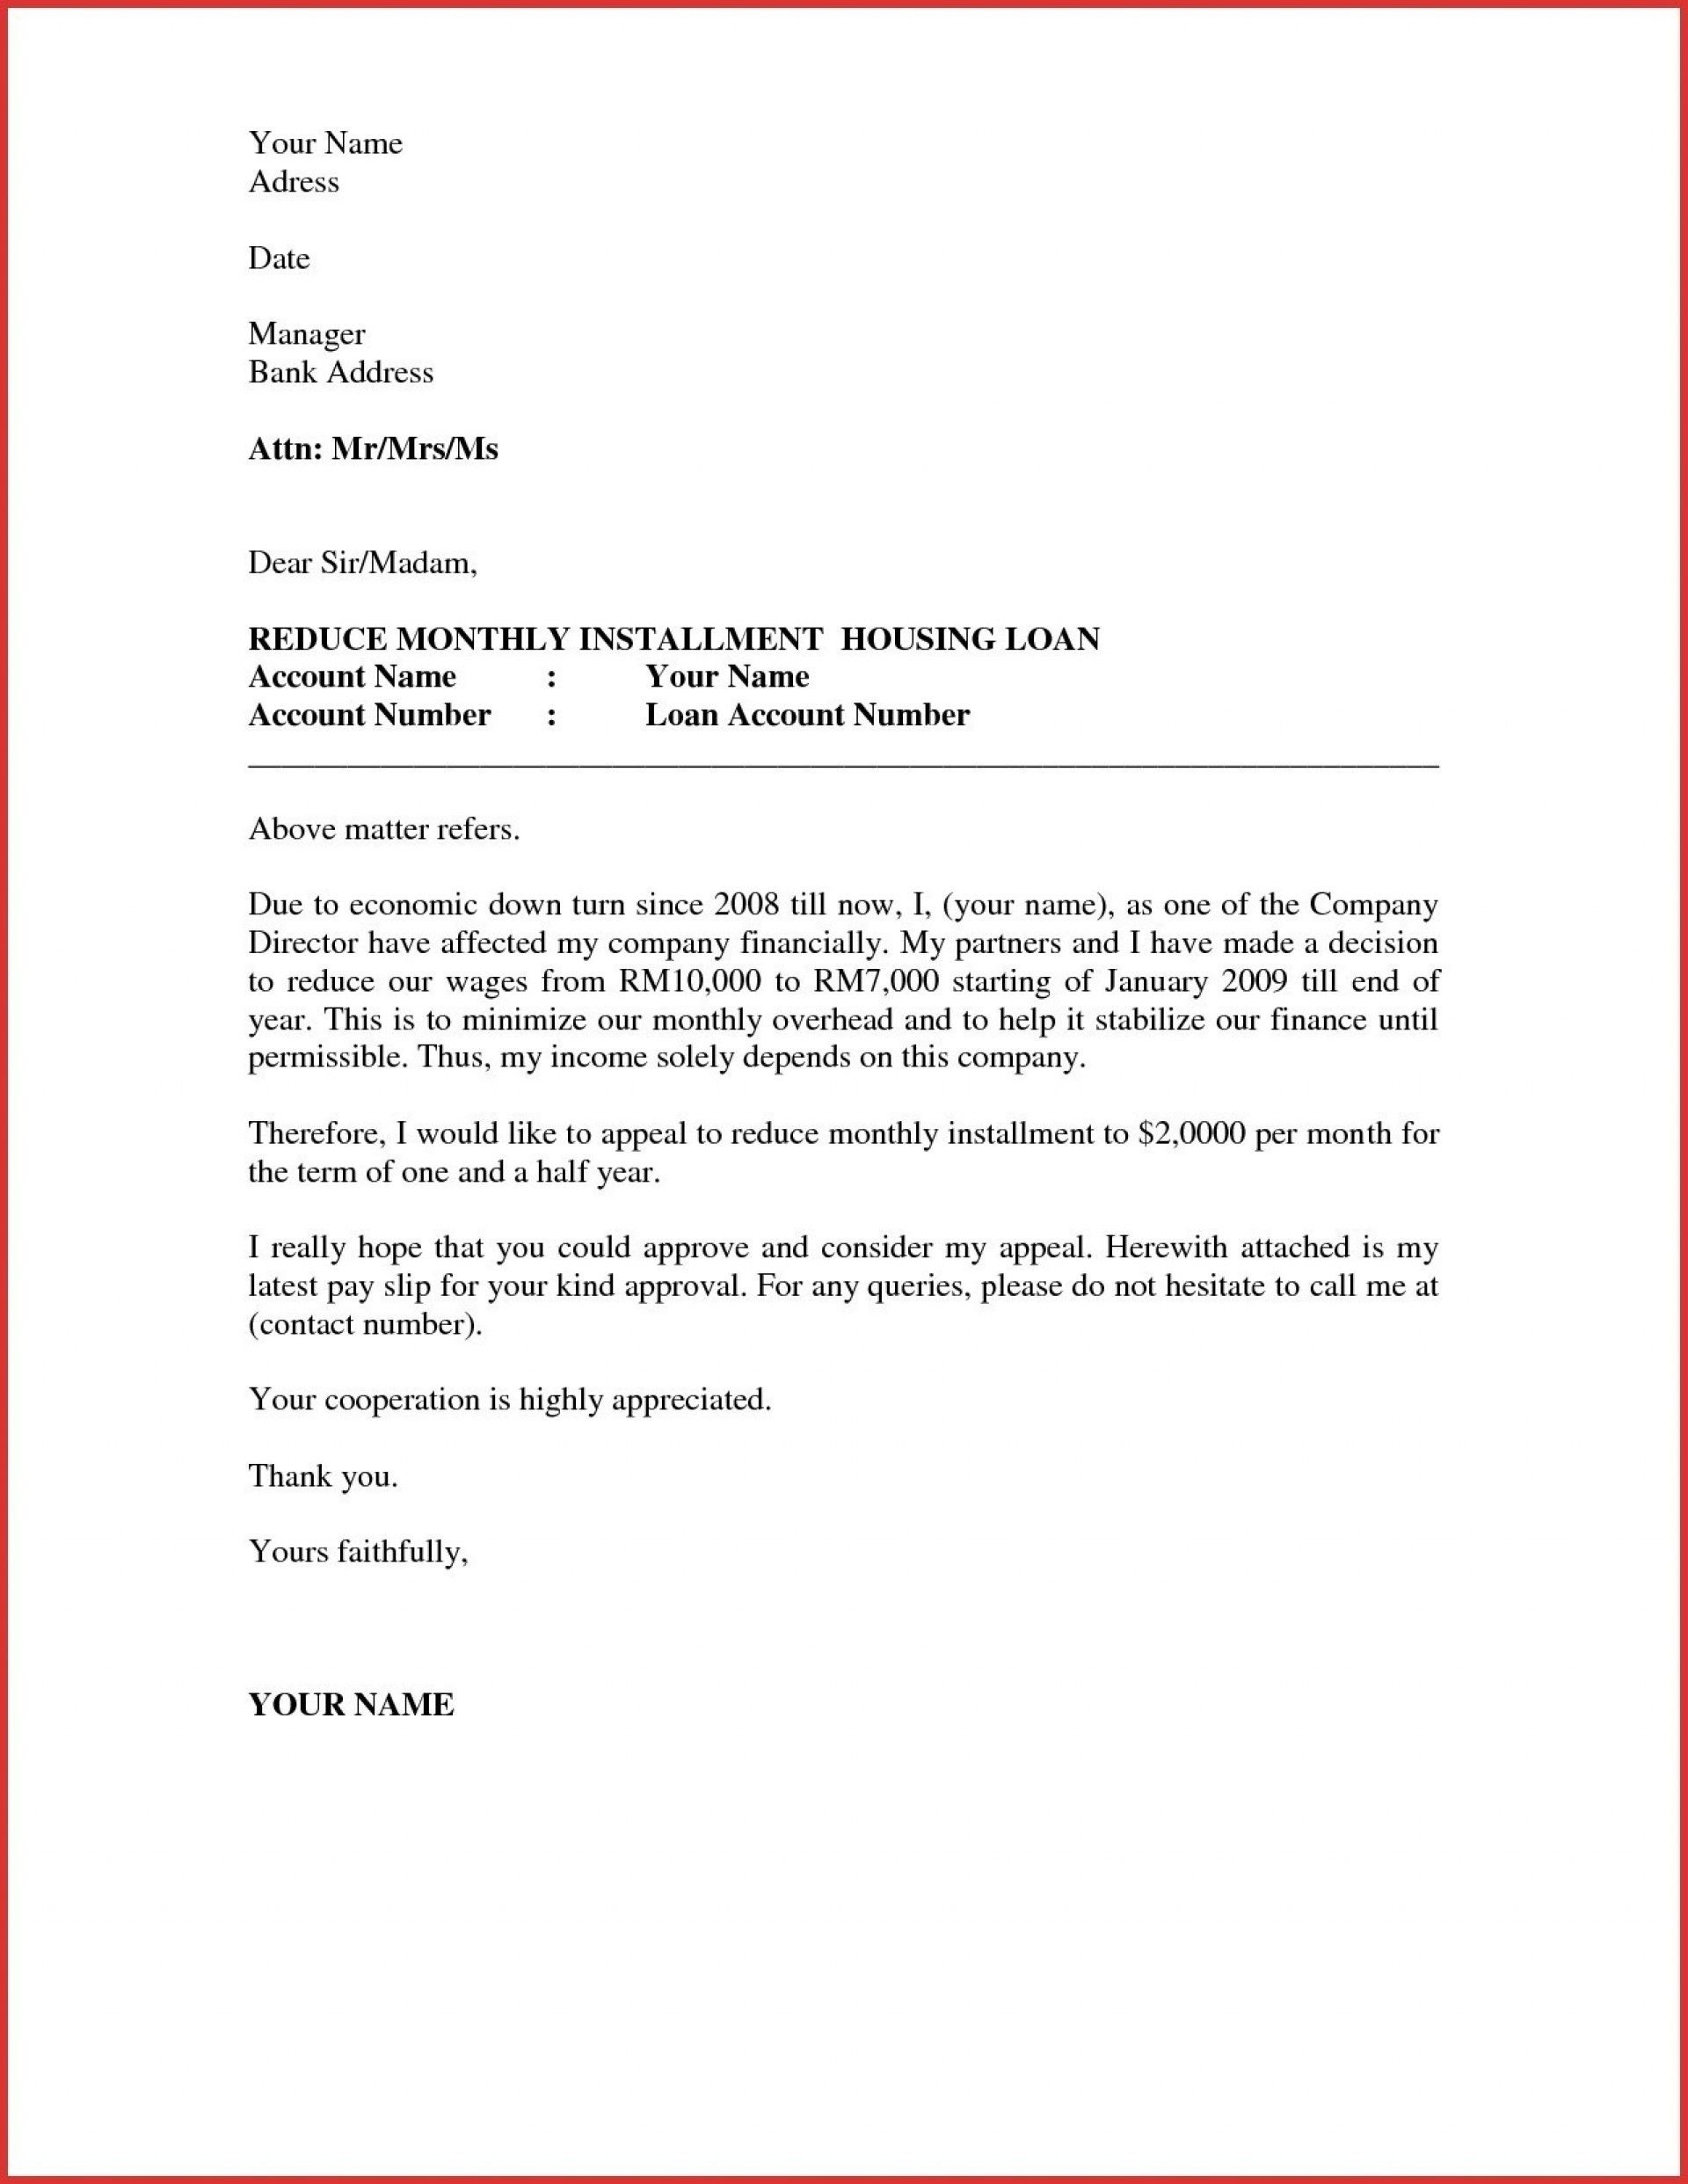 Termination letter templates 26+ free samples, examples formats.